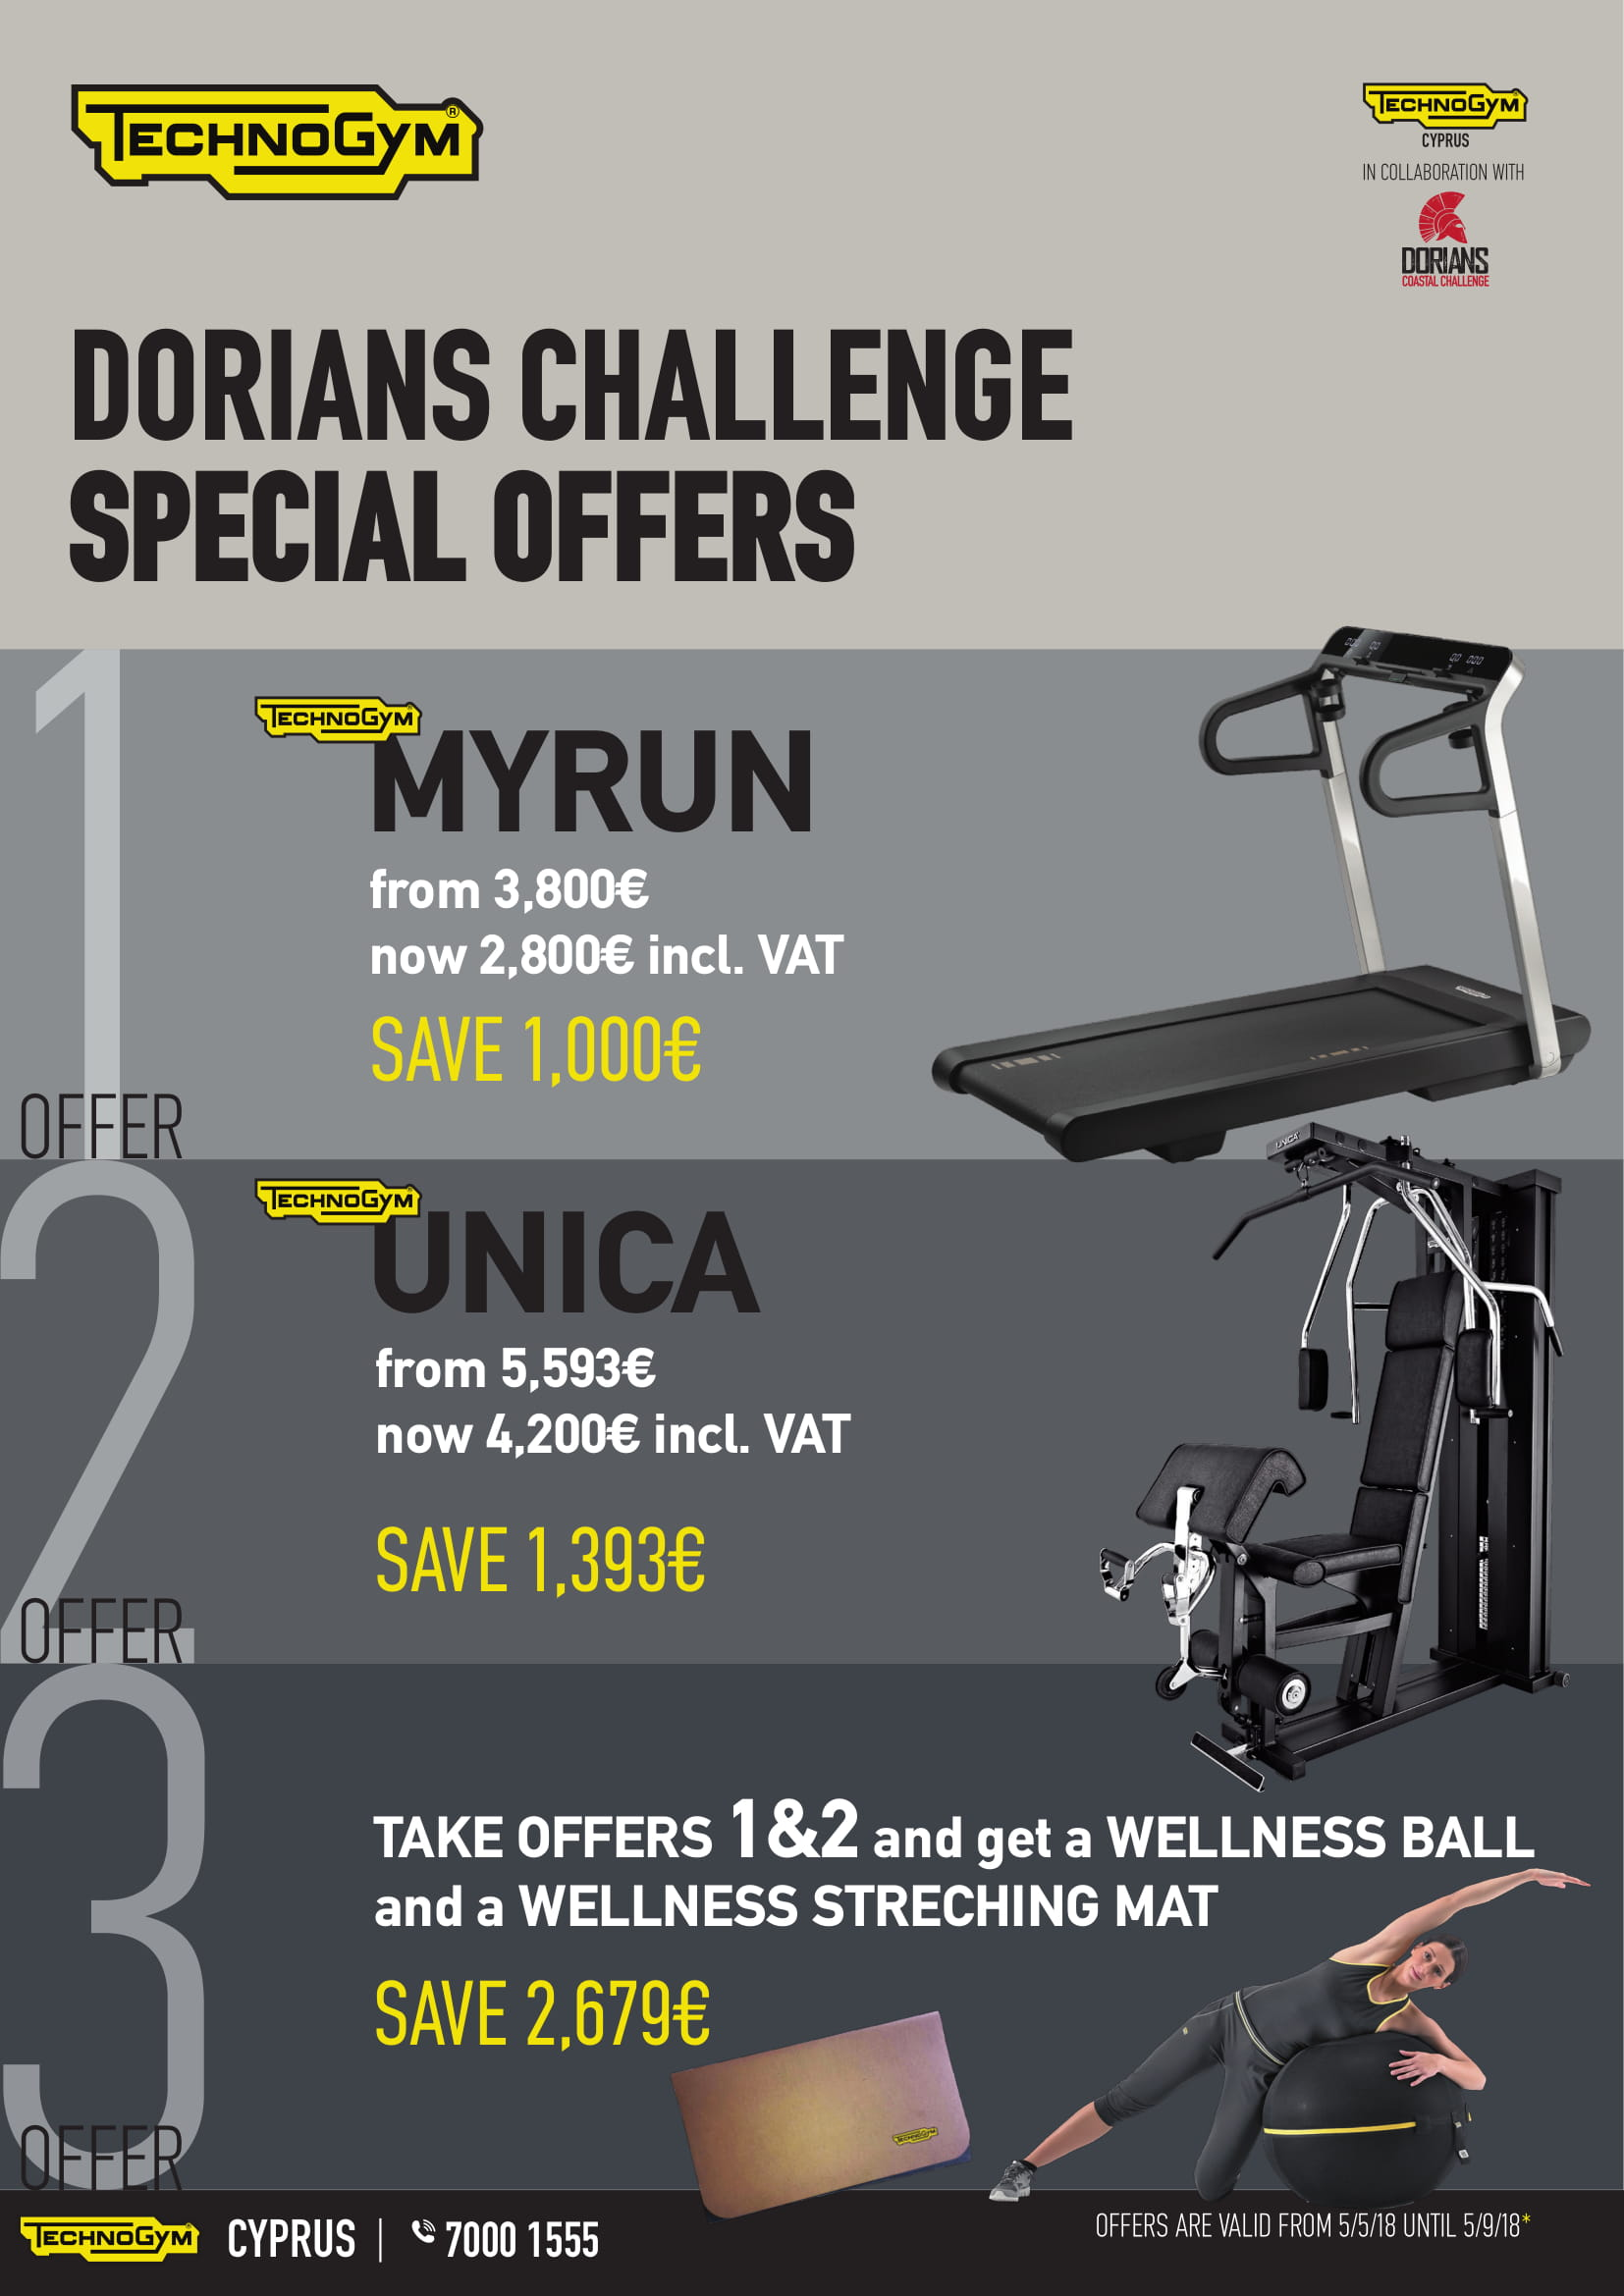 Technogym Dorians FlyerA Final-1